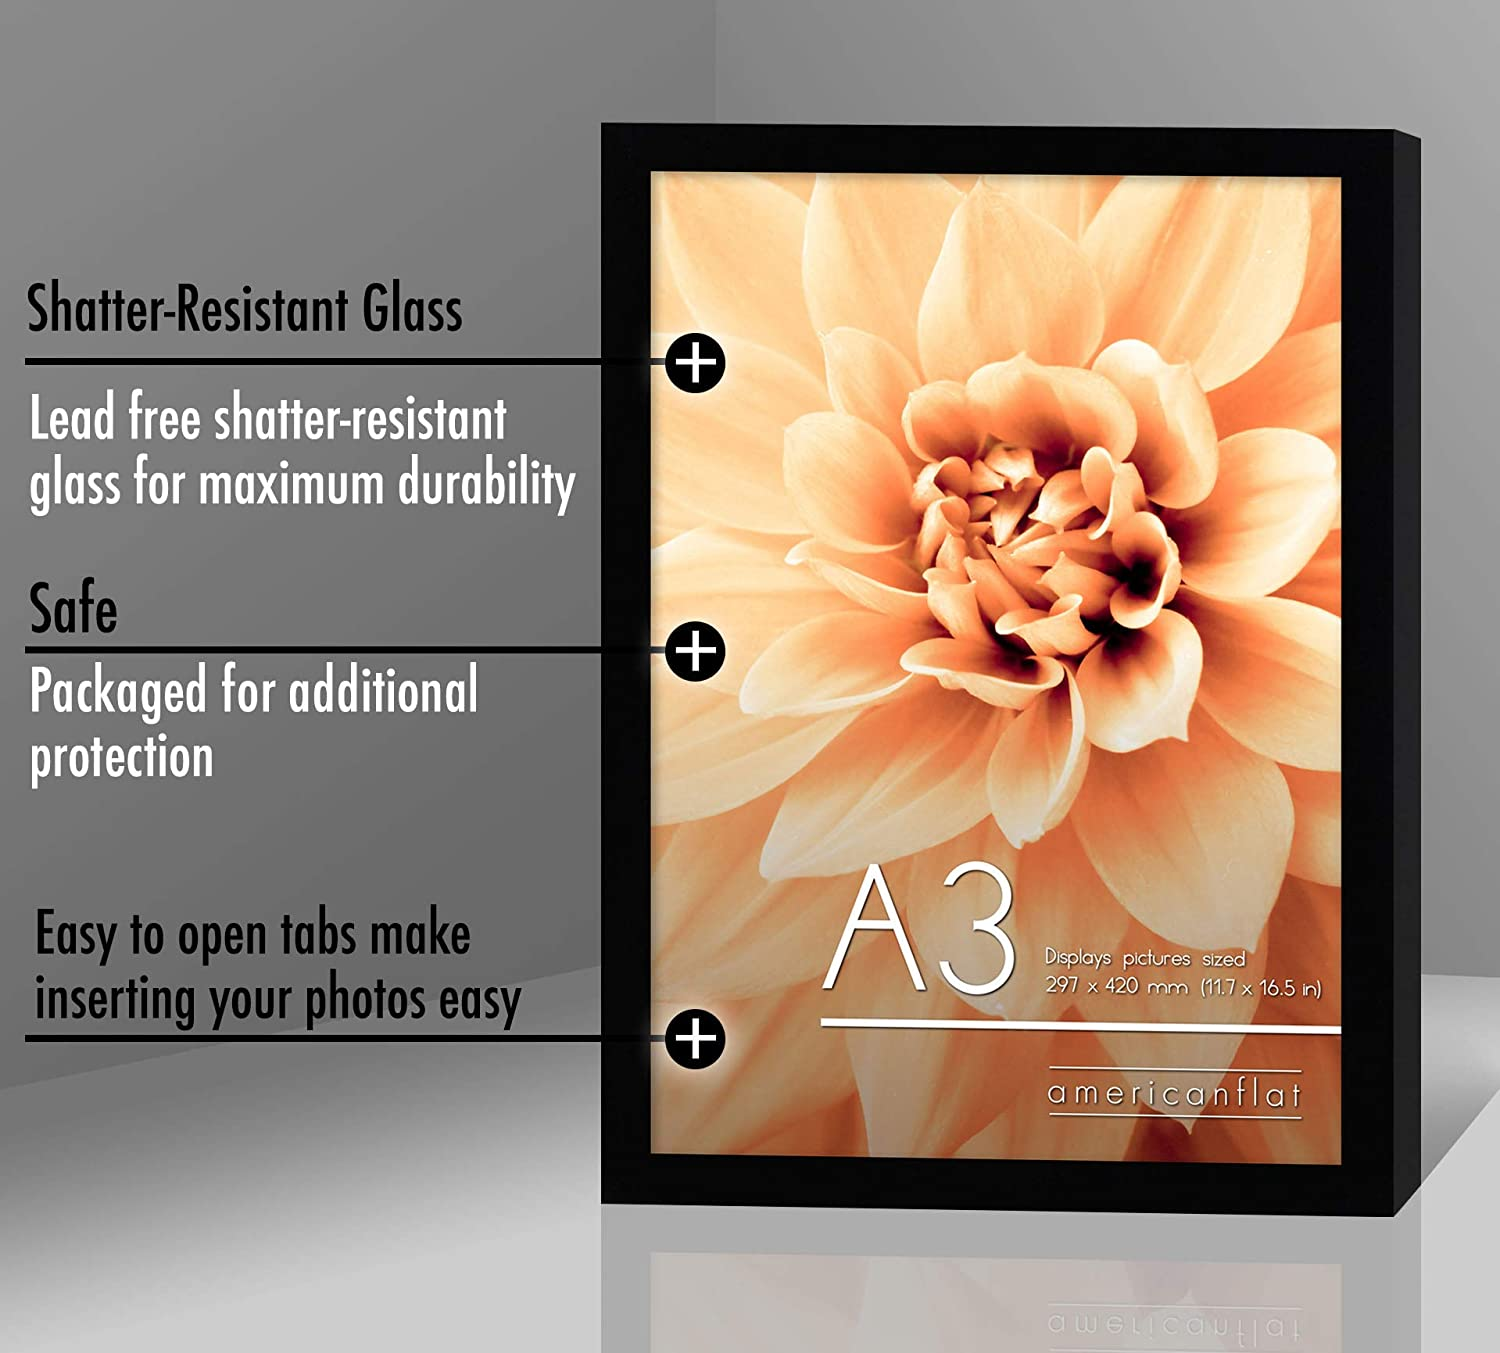 miniature 4 - Americanflat Picture Frame in Black Wood - Shatter Resistant Glass